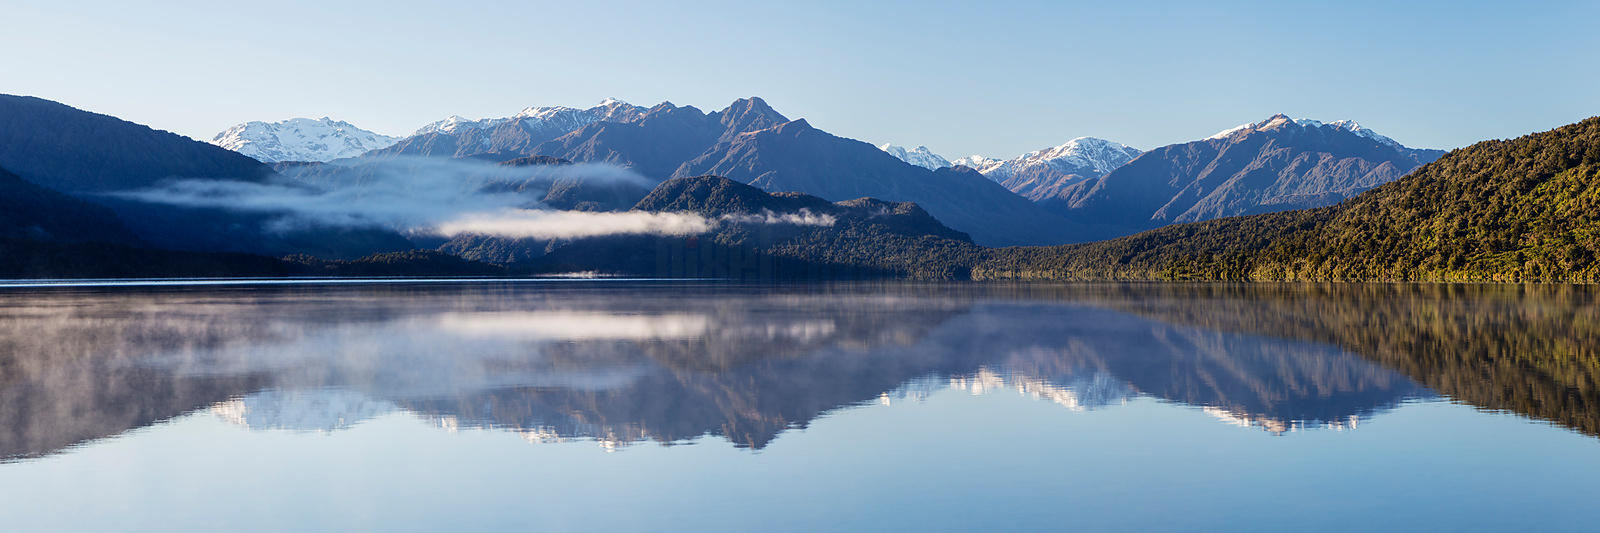 Reflections on Lake Kaniere after Sunrise